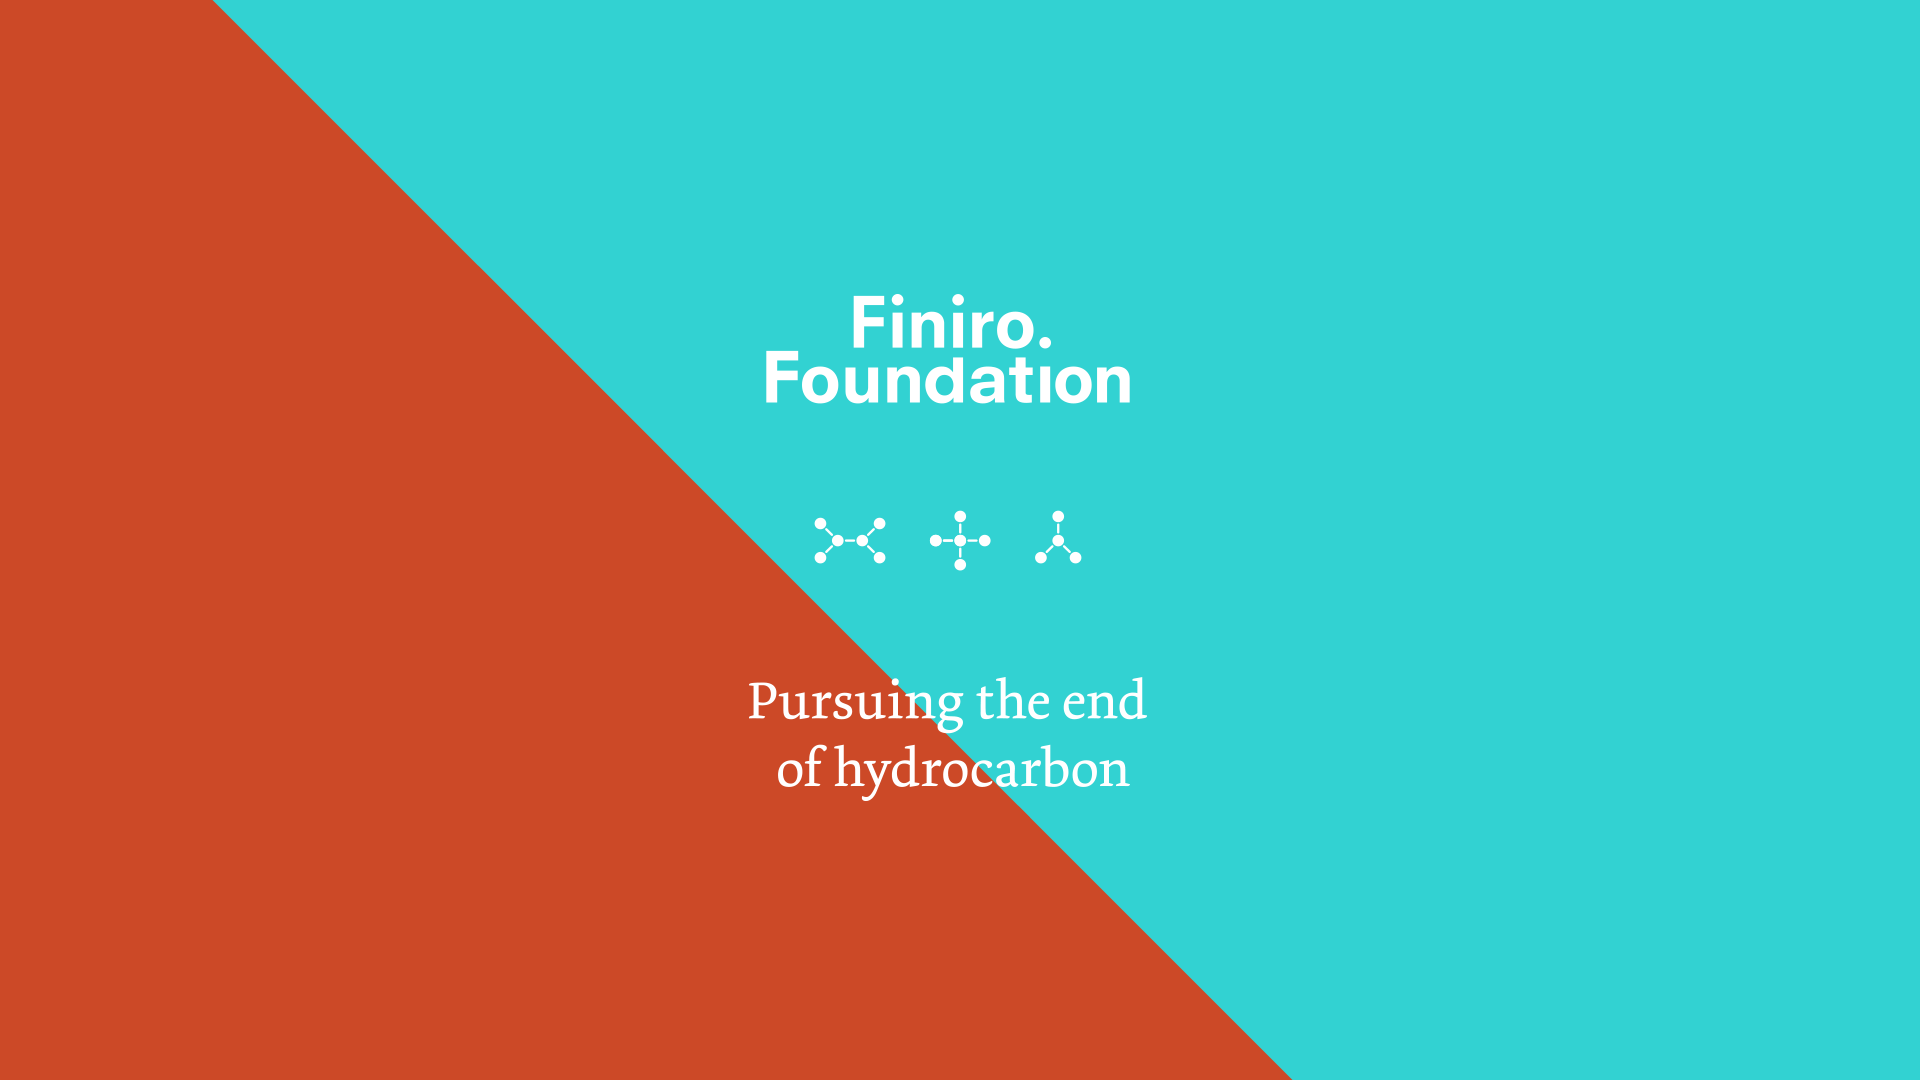 Finiro Foundation, brand identity